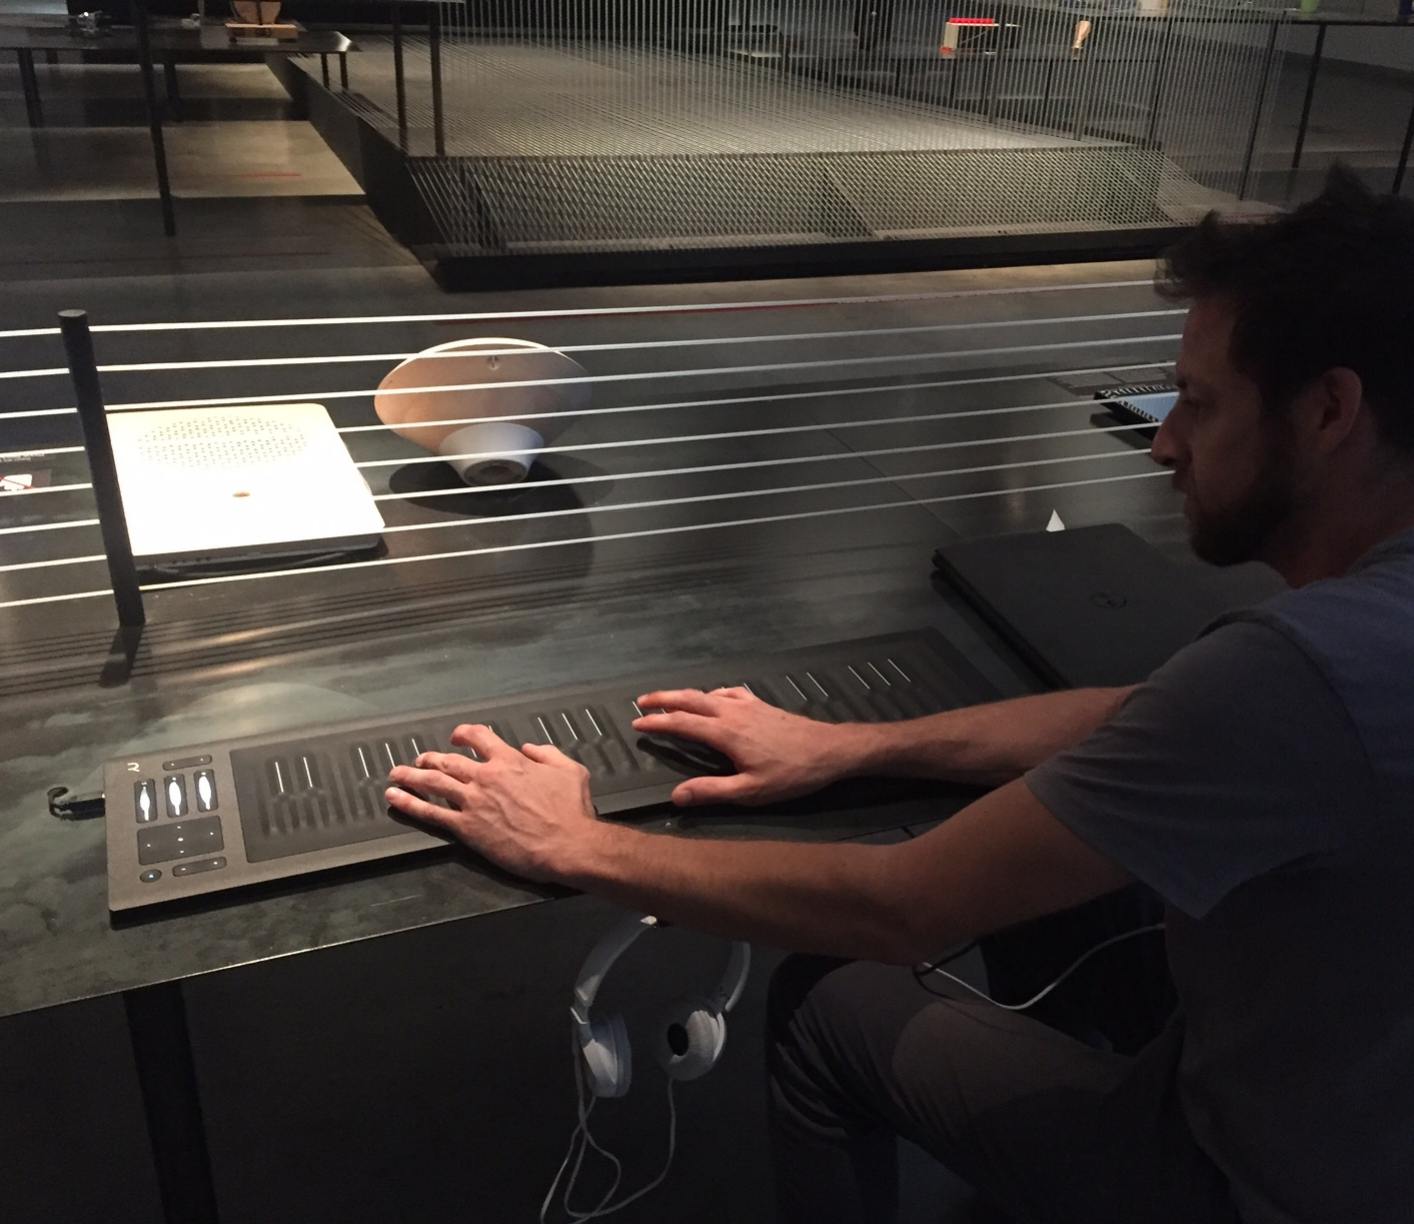 Seaboard RISE 49 in Holon Design Museum